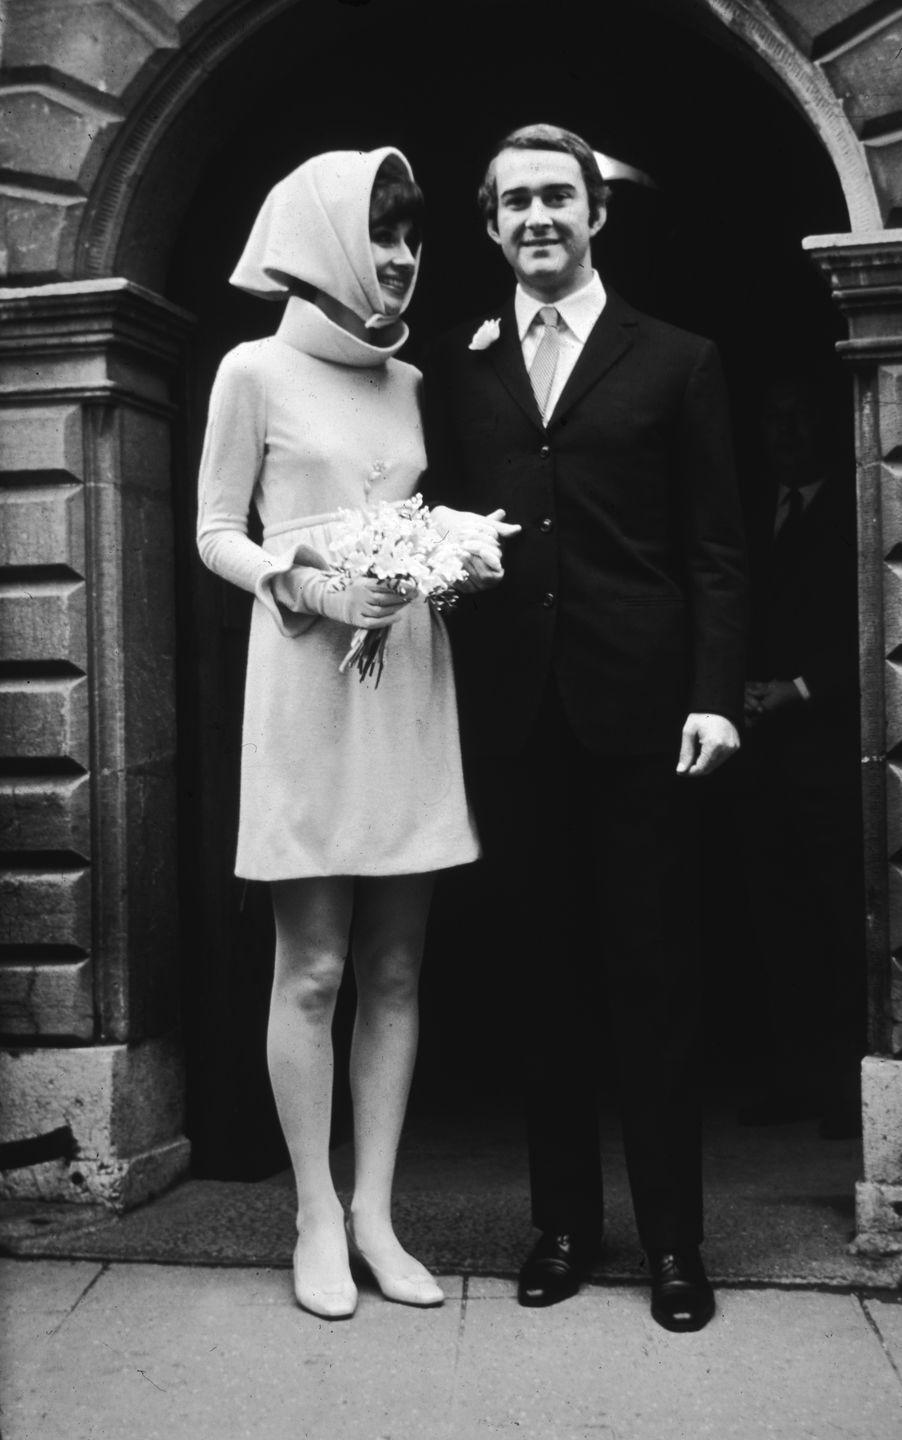 <p>The popular '60s trend of brides wearing short wedding dresses was still going strong at the end of the decade, and some brides opted for a hat as opposed to a veil. Audrey Hepburn went for both trends, wearing a short dress <em>and</em> a head-covering.</p>